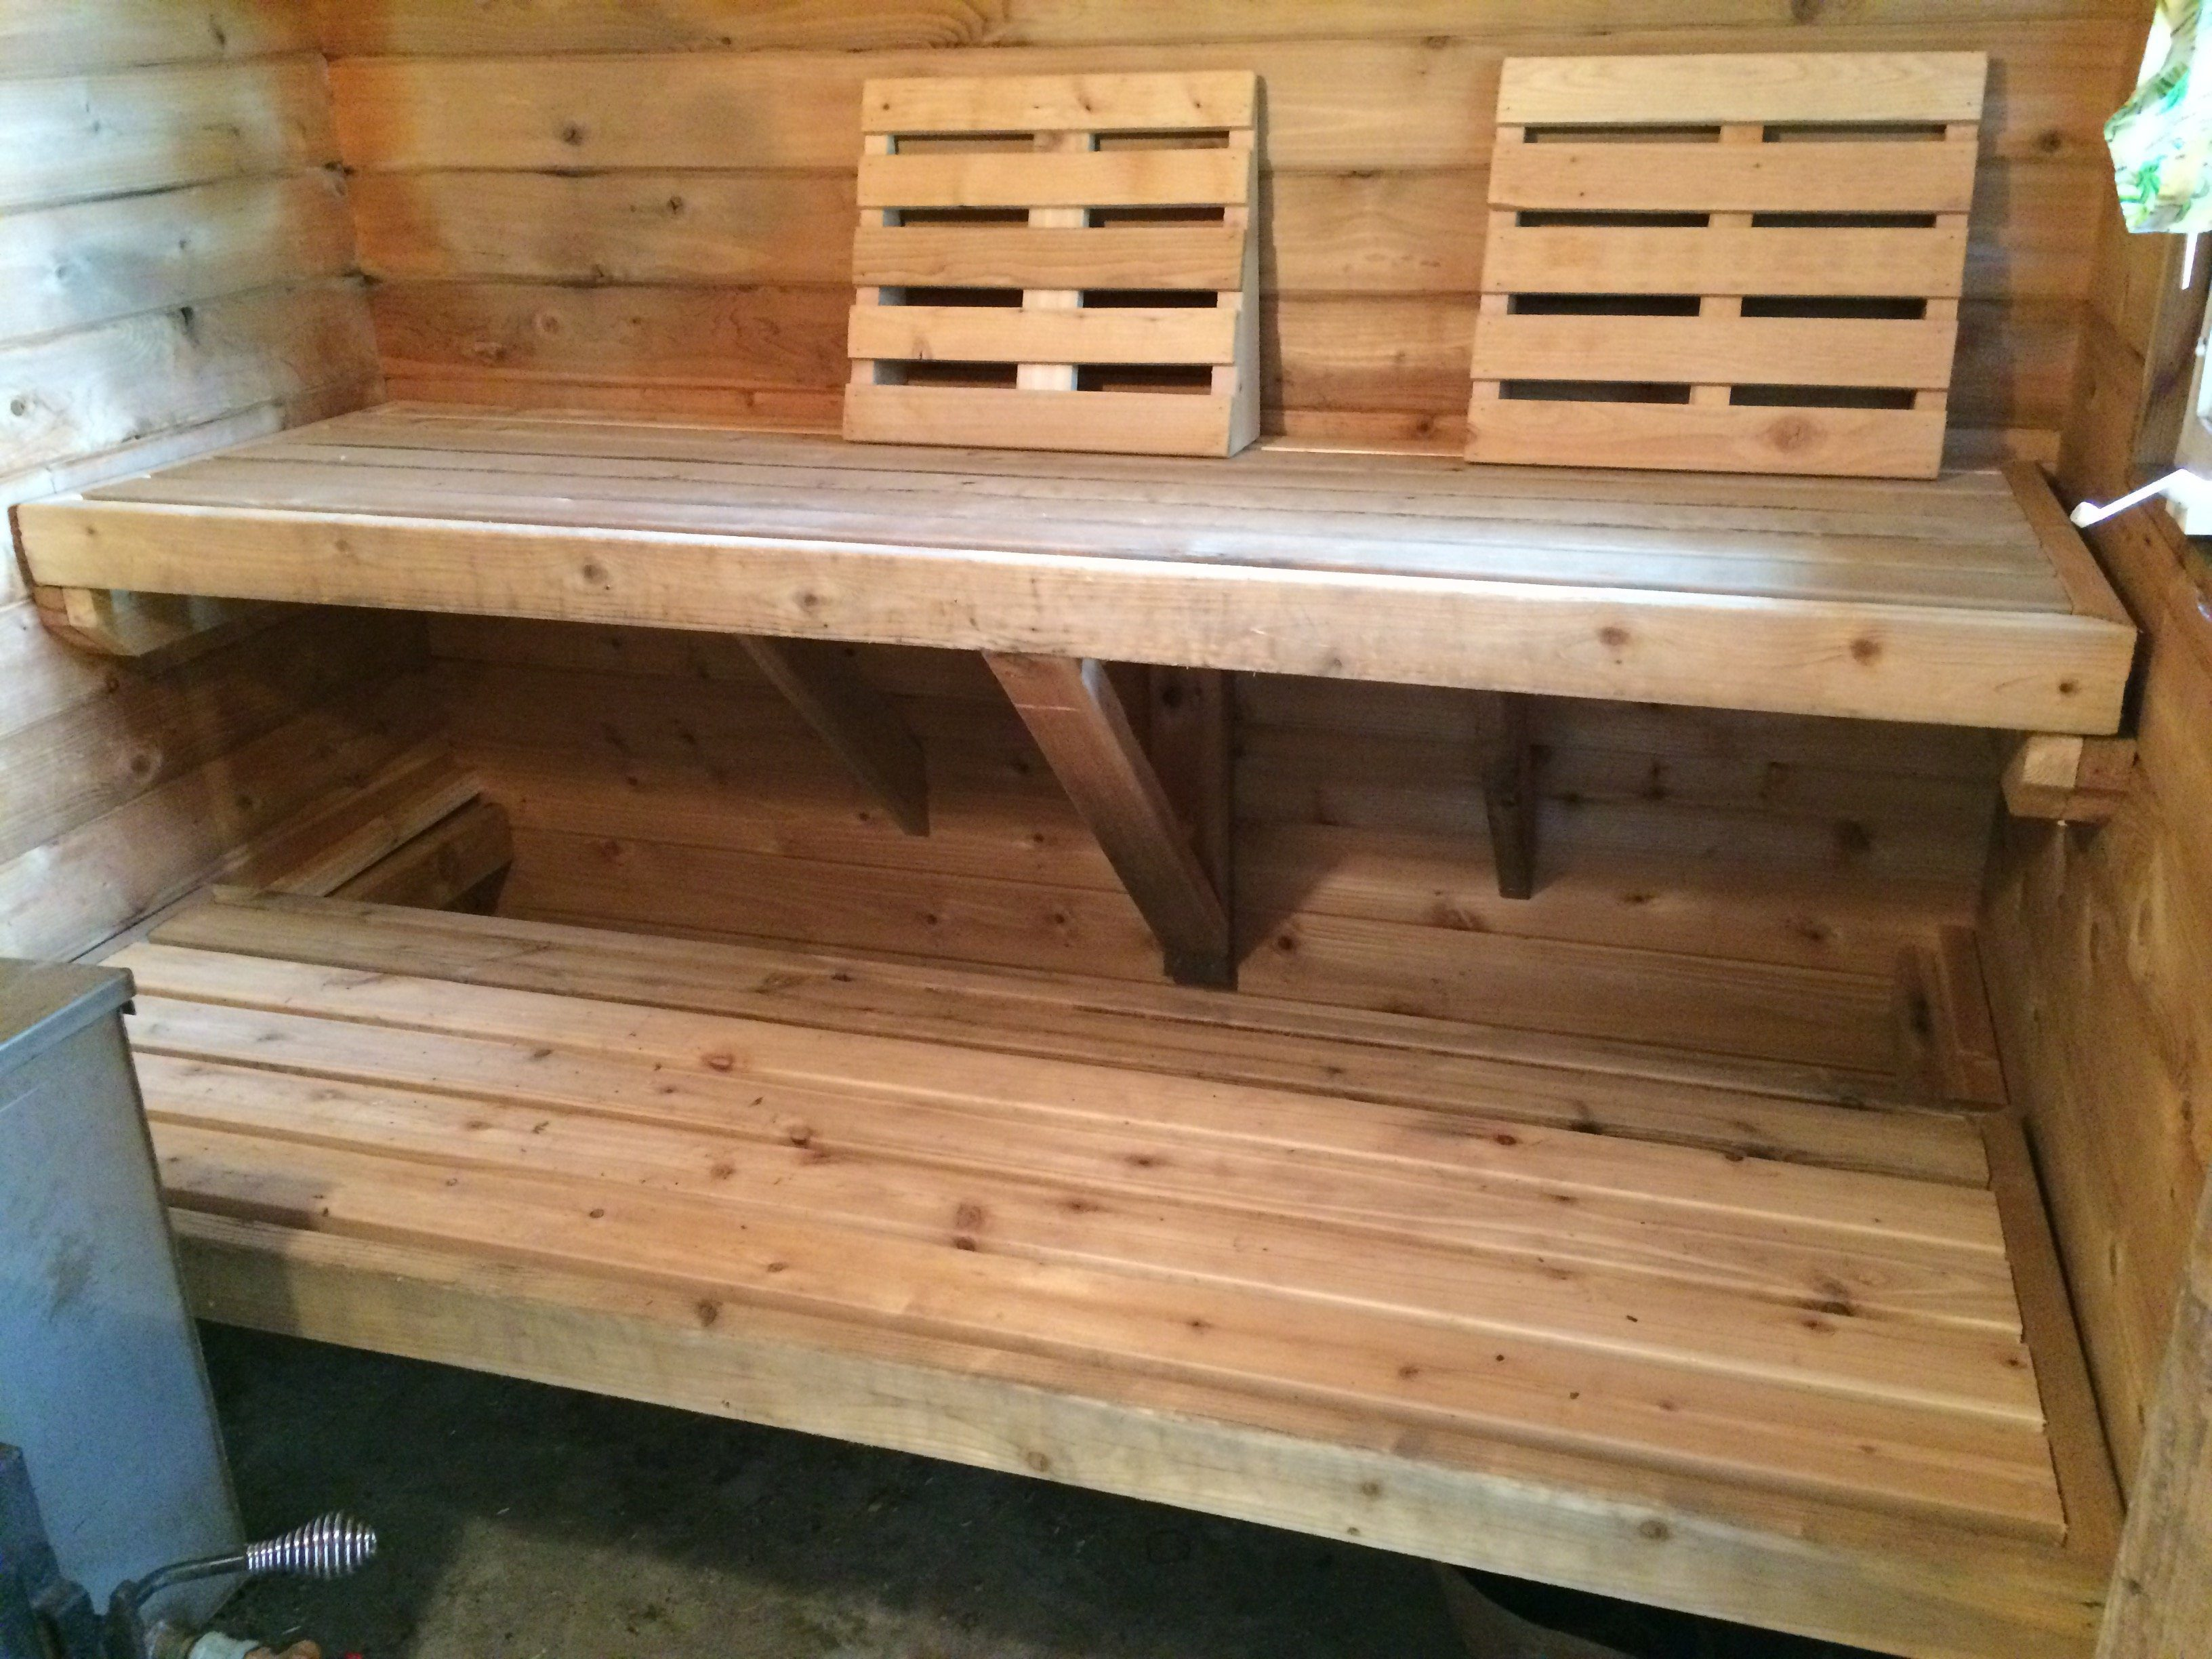 refurbished sauna benches (note new support system and wider benches)